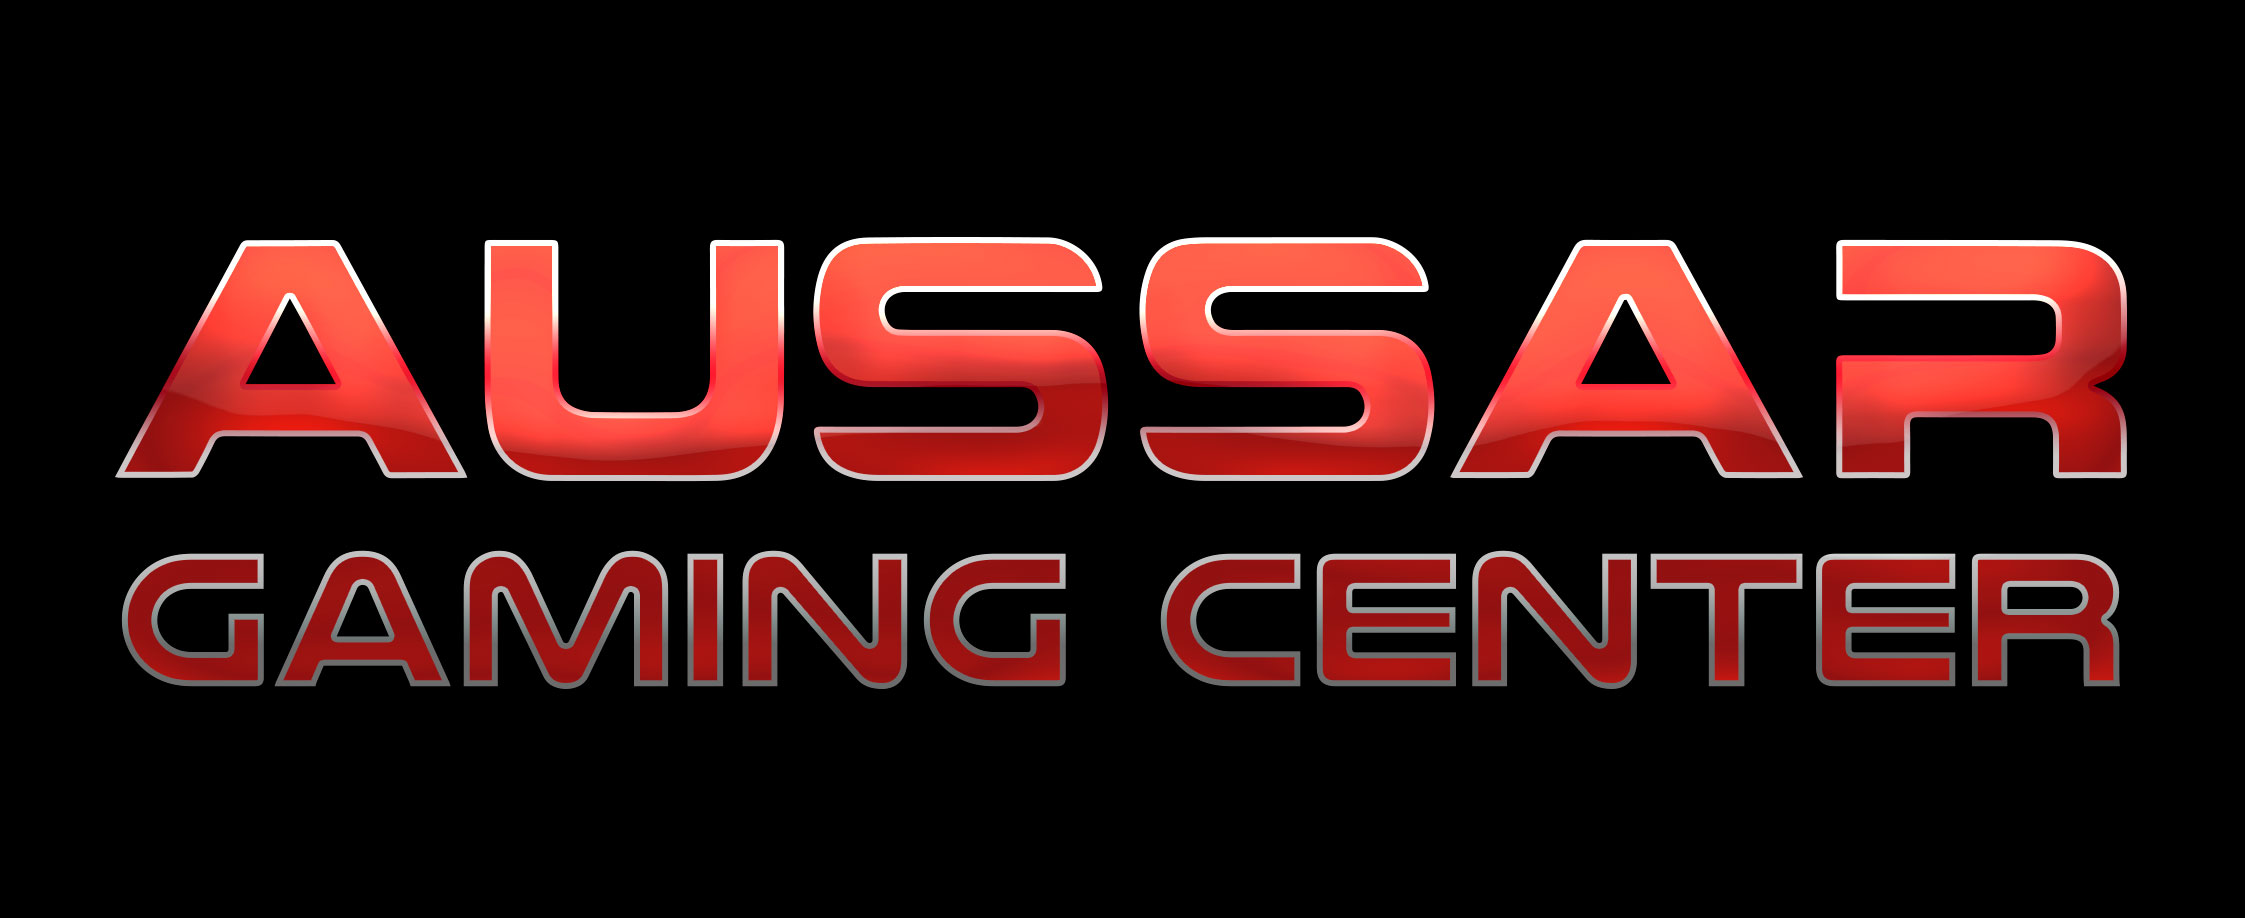 Aussar Gaming Center